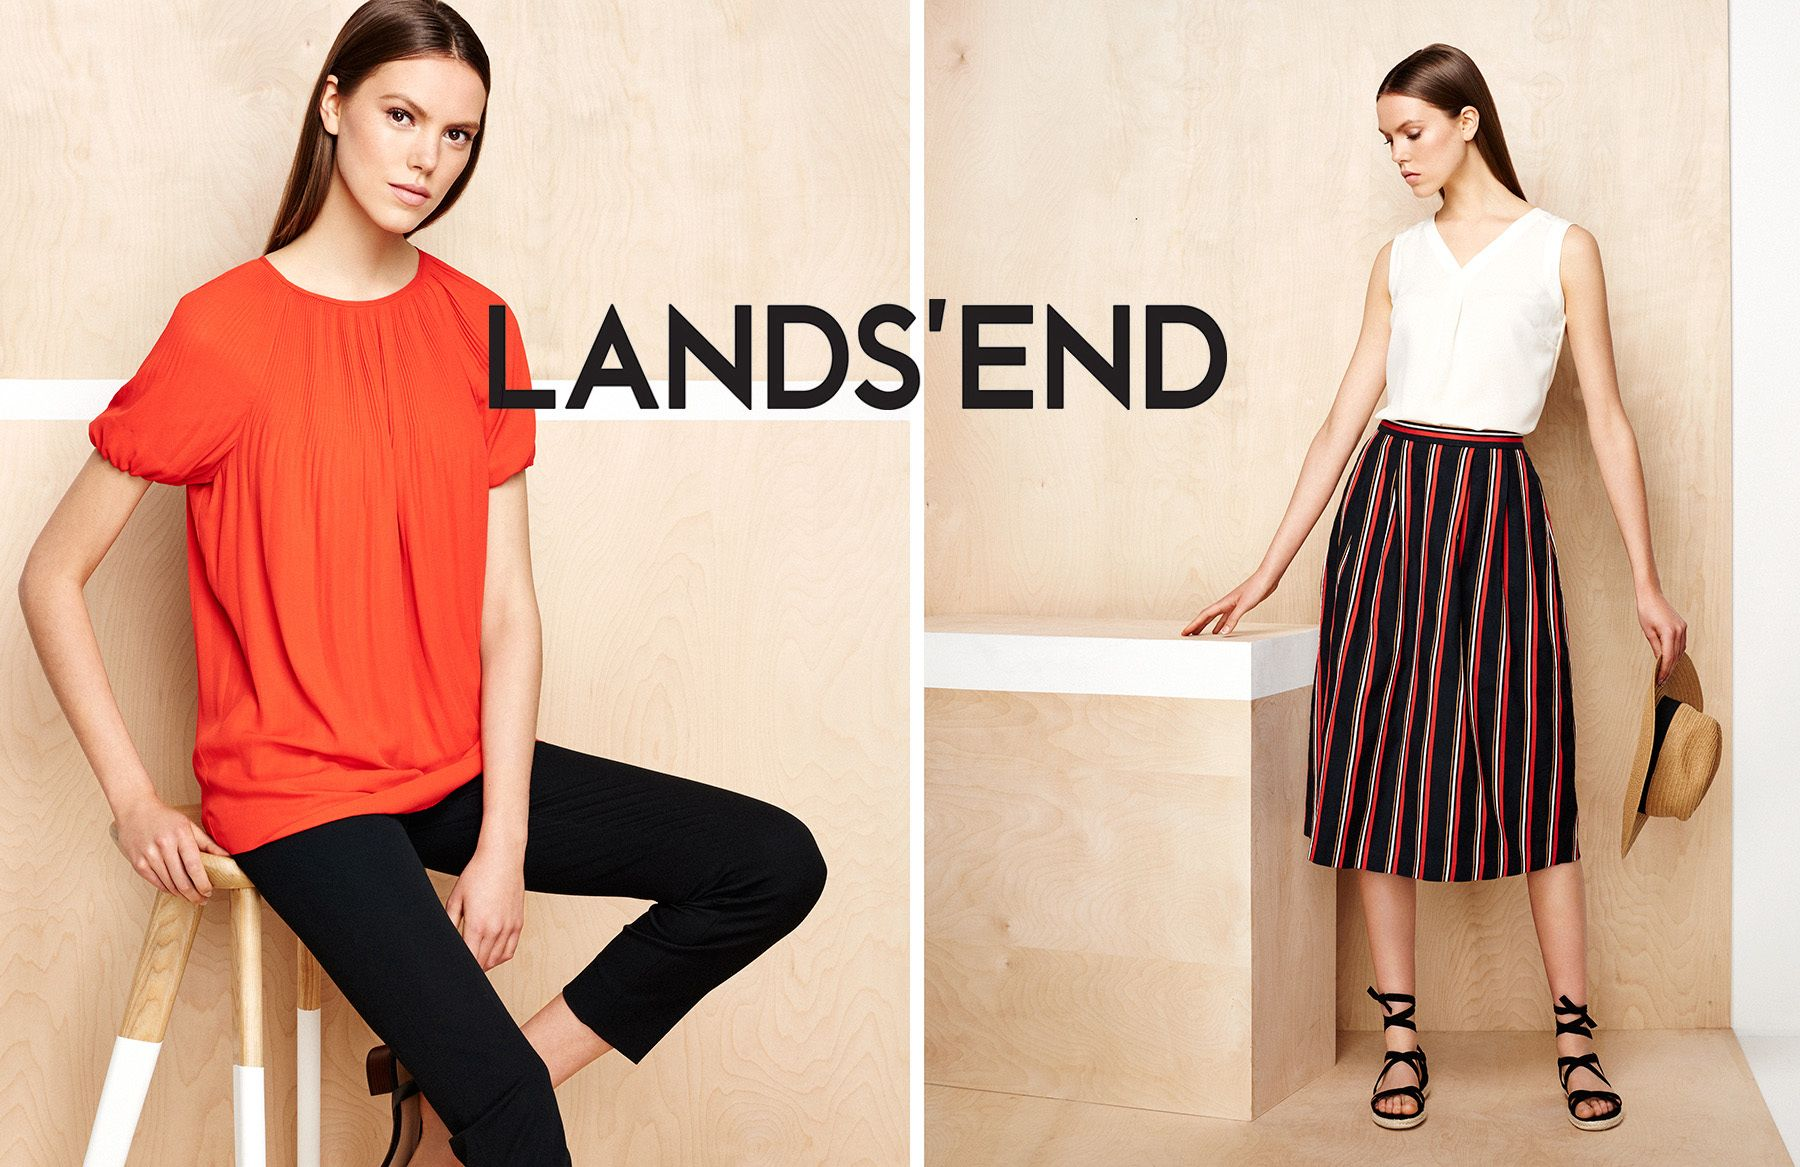 Landsend Catalogue